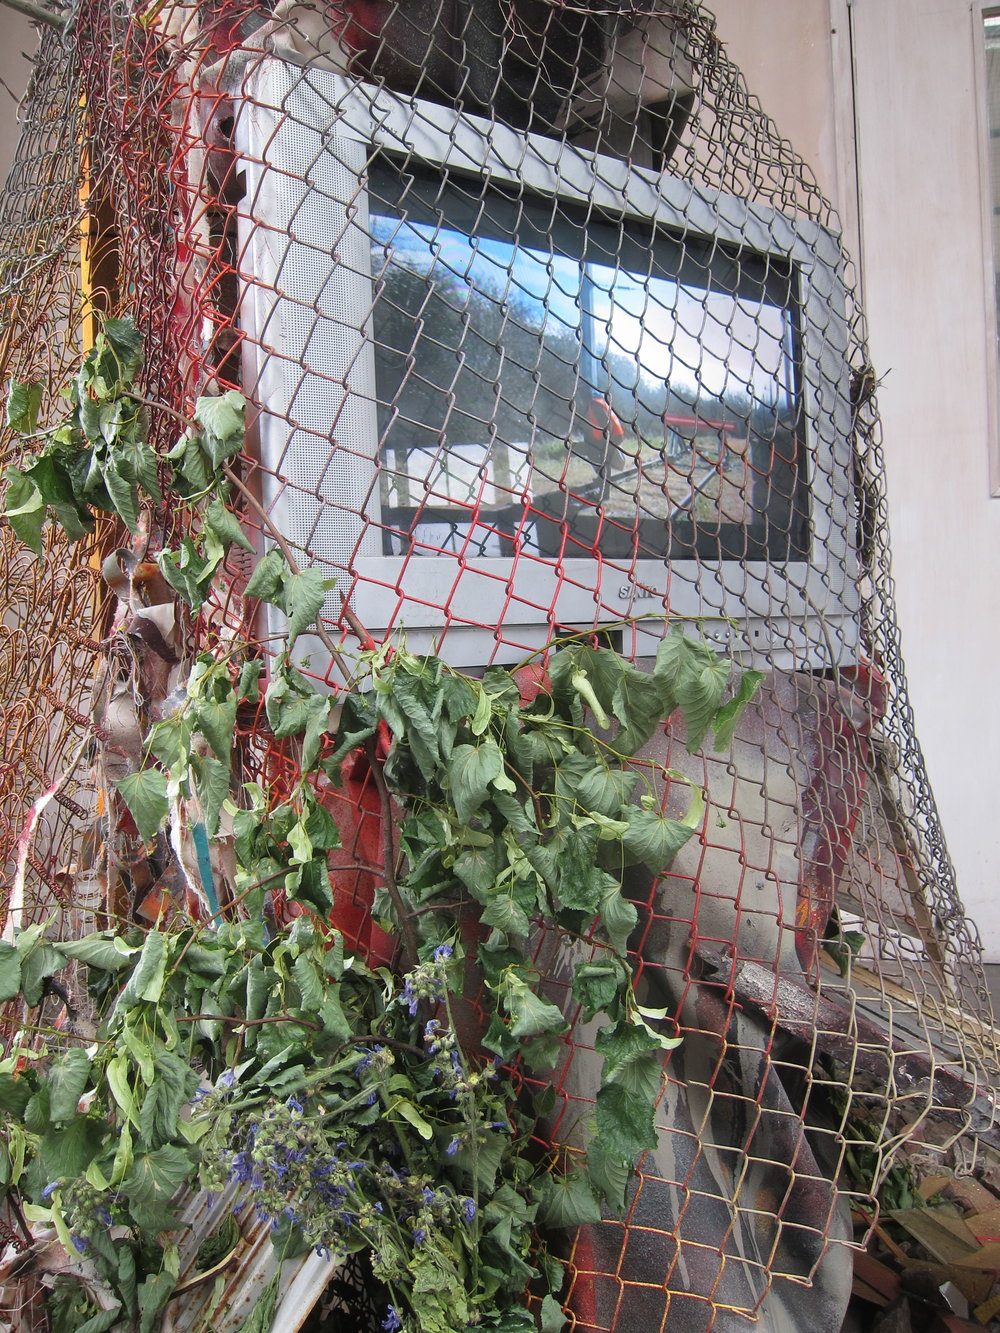 Vandal Safari 002 (detail).    Mixed media.   Dimensions variable.   Liminal  at The Ragged School Museum, London 2015.